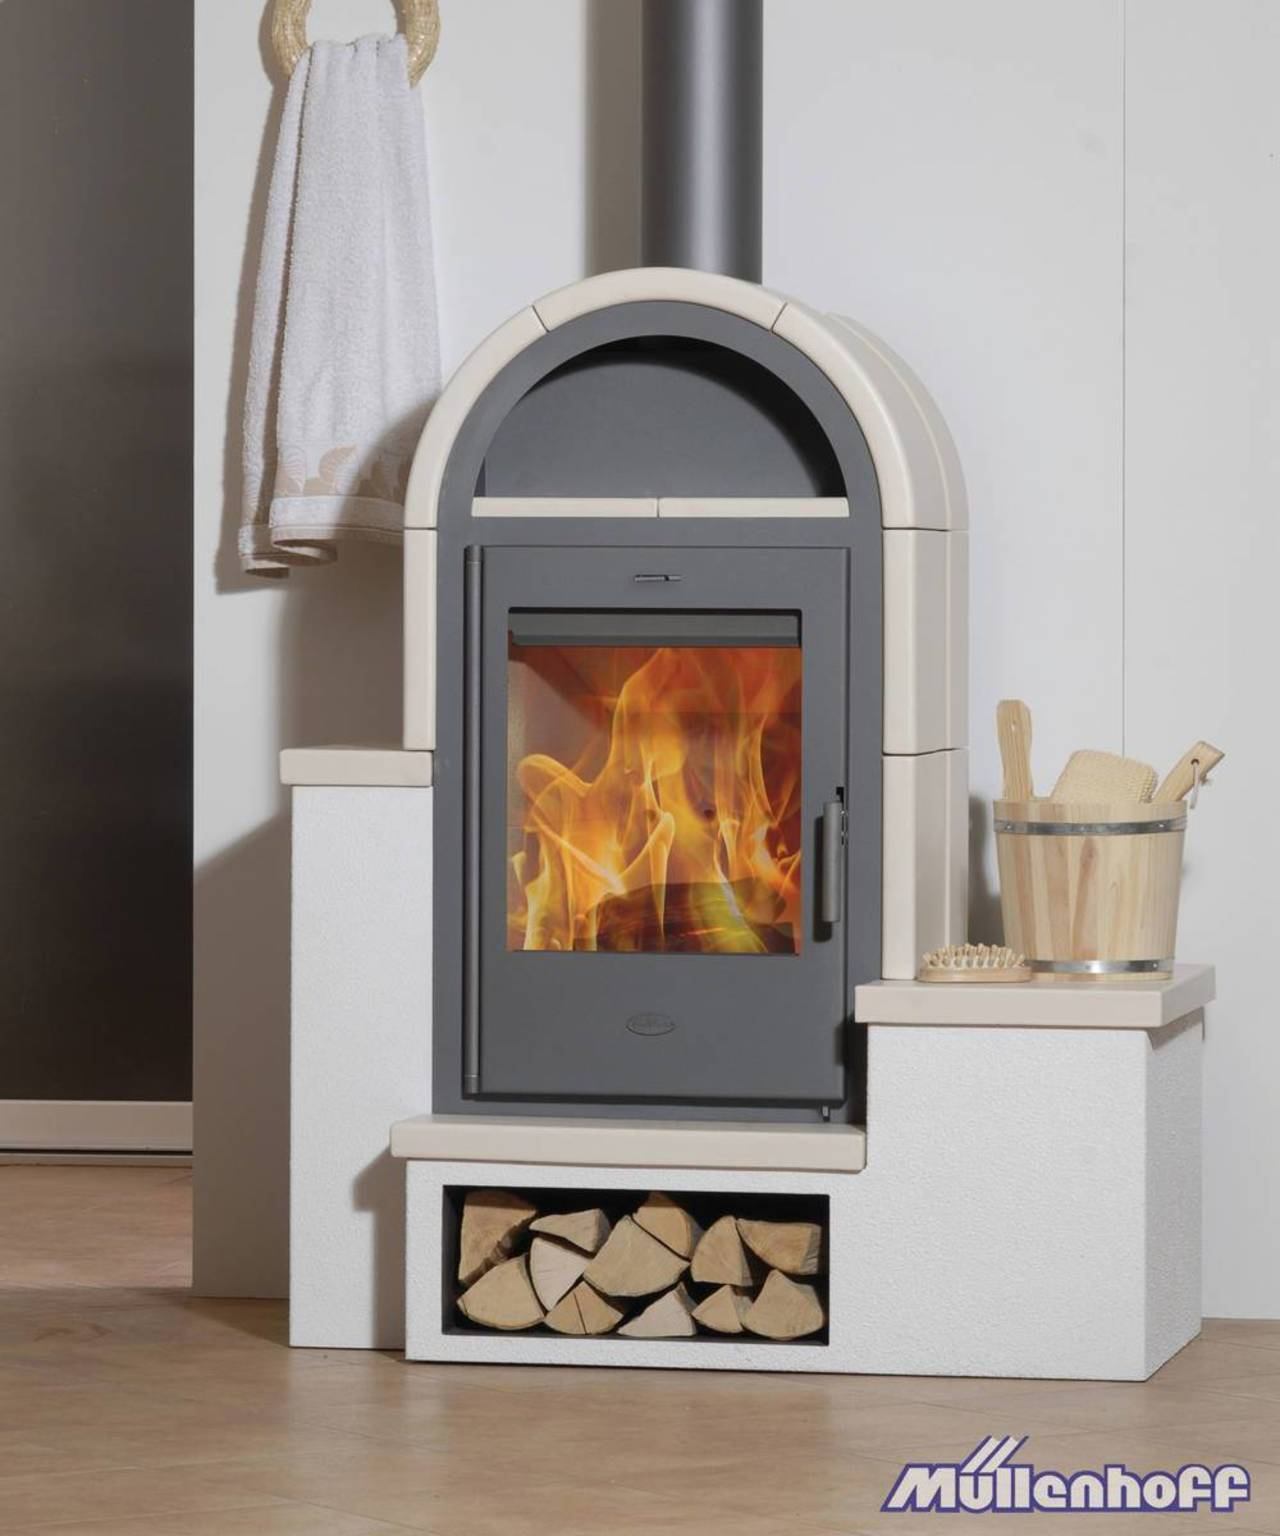 fireplace kaminofen serena mit kacheln beige sitzbank 7 kw kamin ofen holz ebay. Black Bedroom Furniture Sets. Home Design Ideas